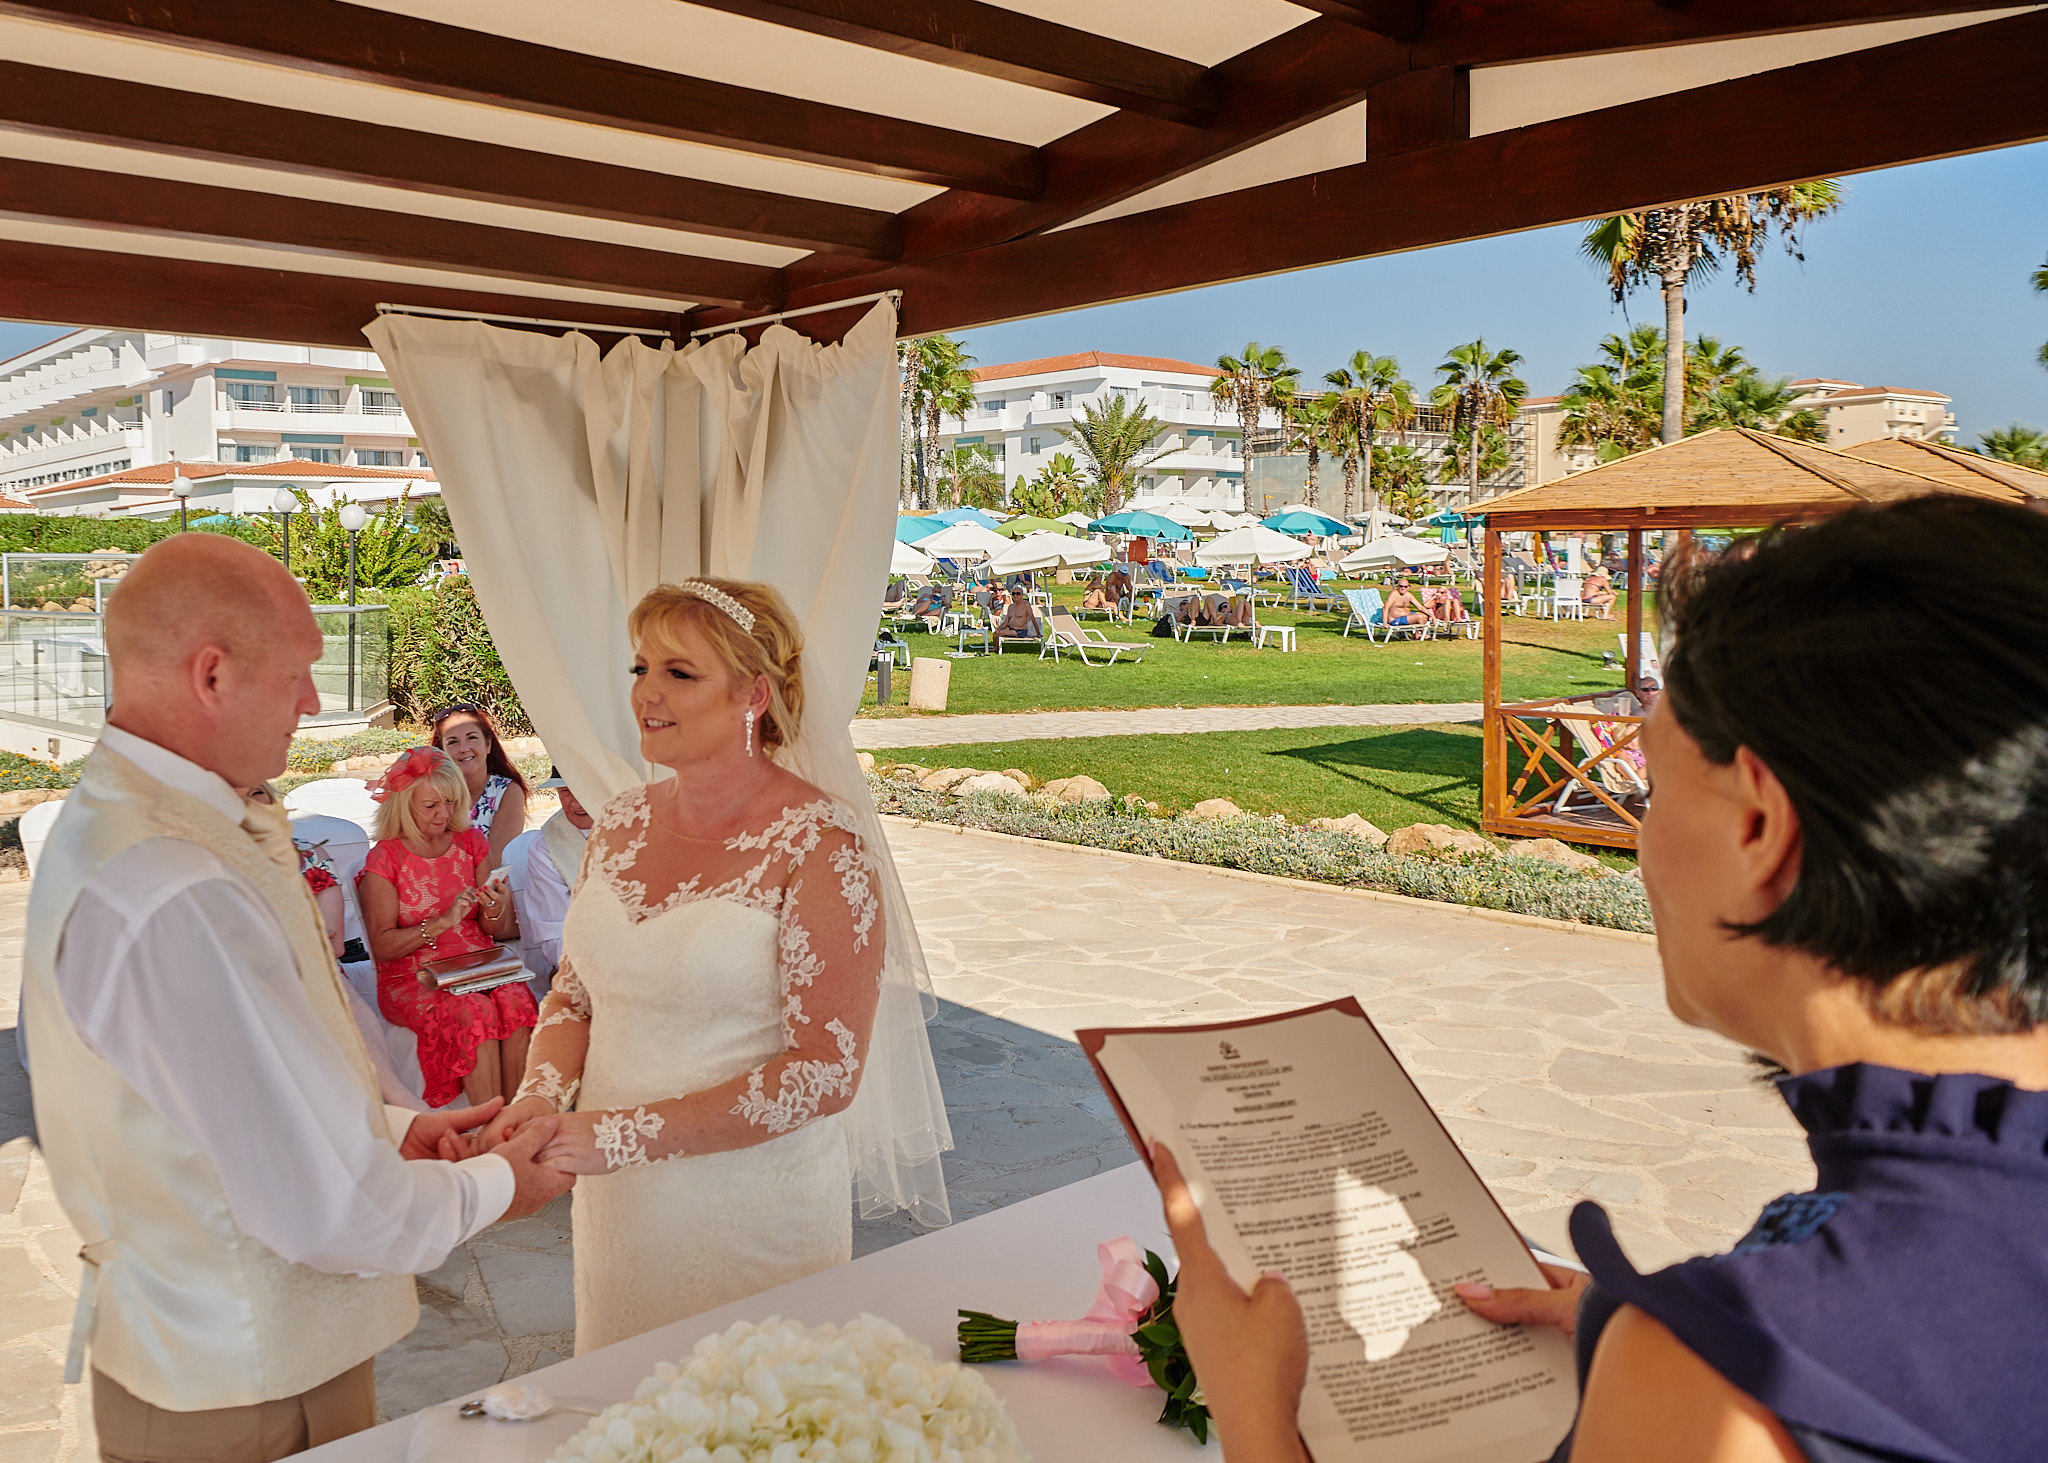 Wedding photography of Kara and Ian taken at The Sentido Cypria Bay, in Pafos, Cyprus by Richard King.  September 2018.  The wedding included a trip on a wedding bus.